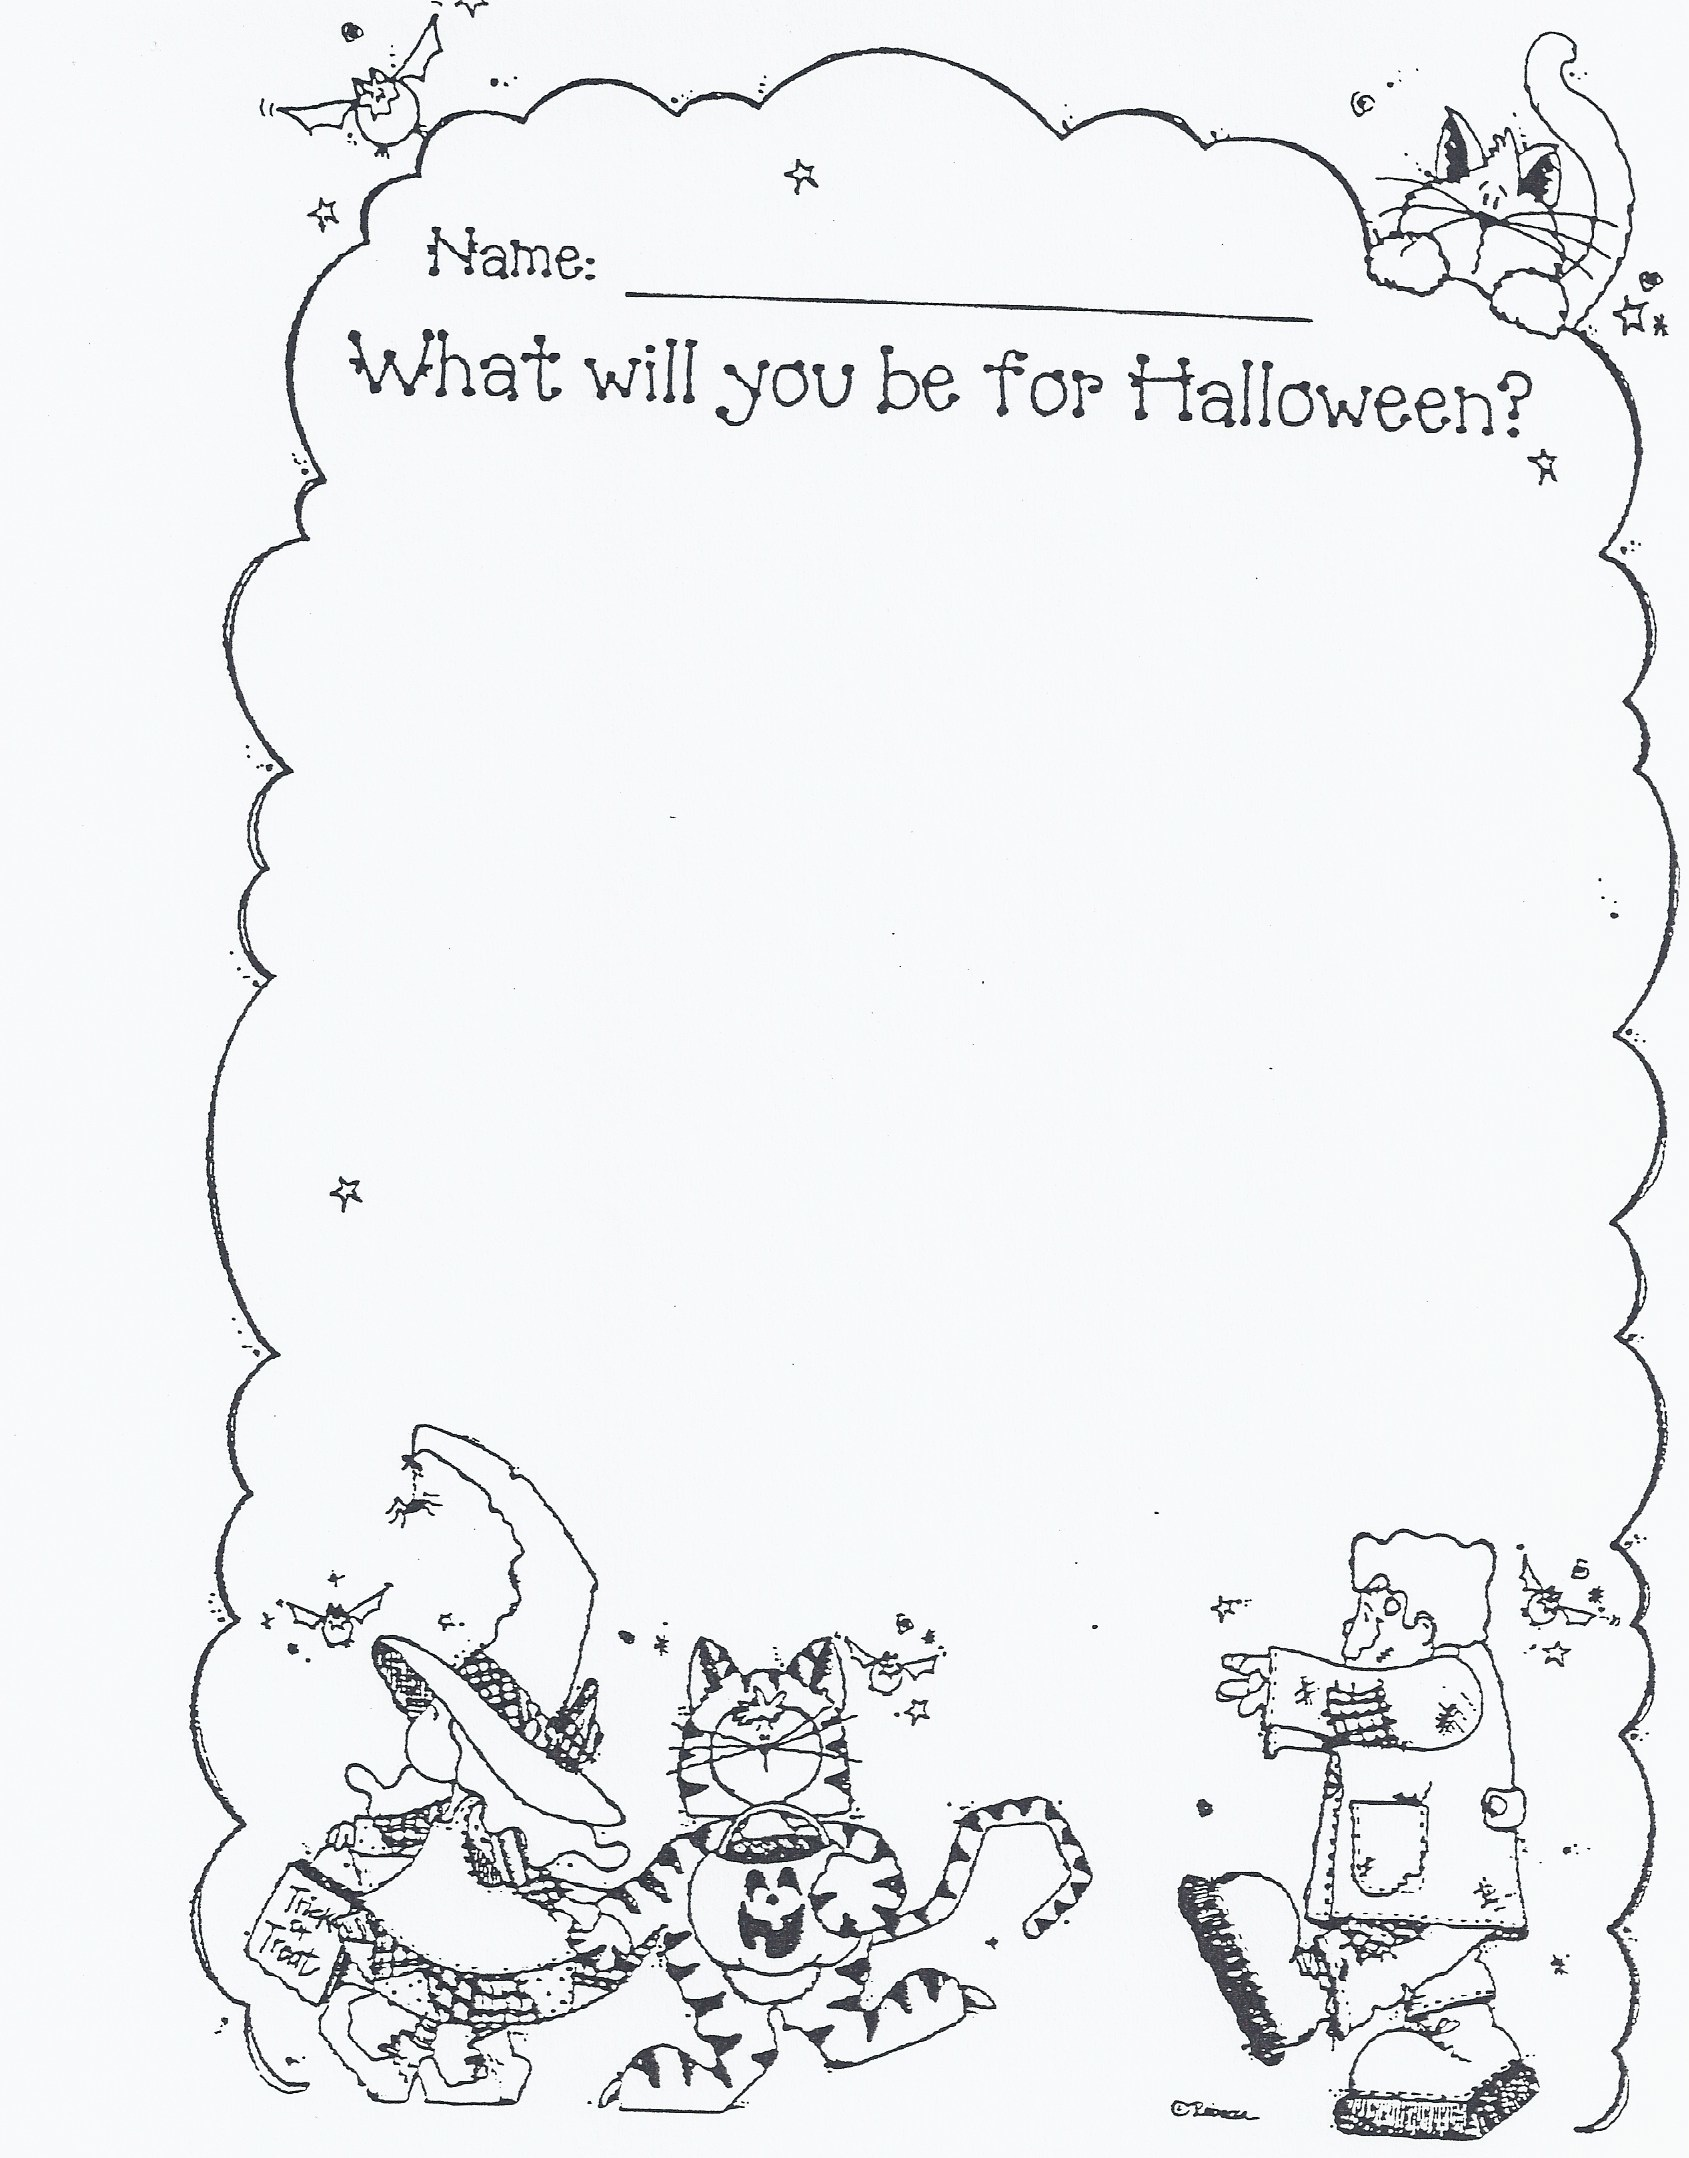 halloween drawing activities at getdrawings com free for personal